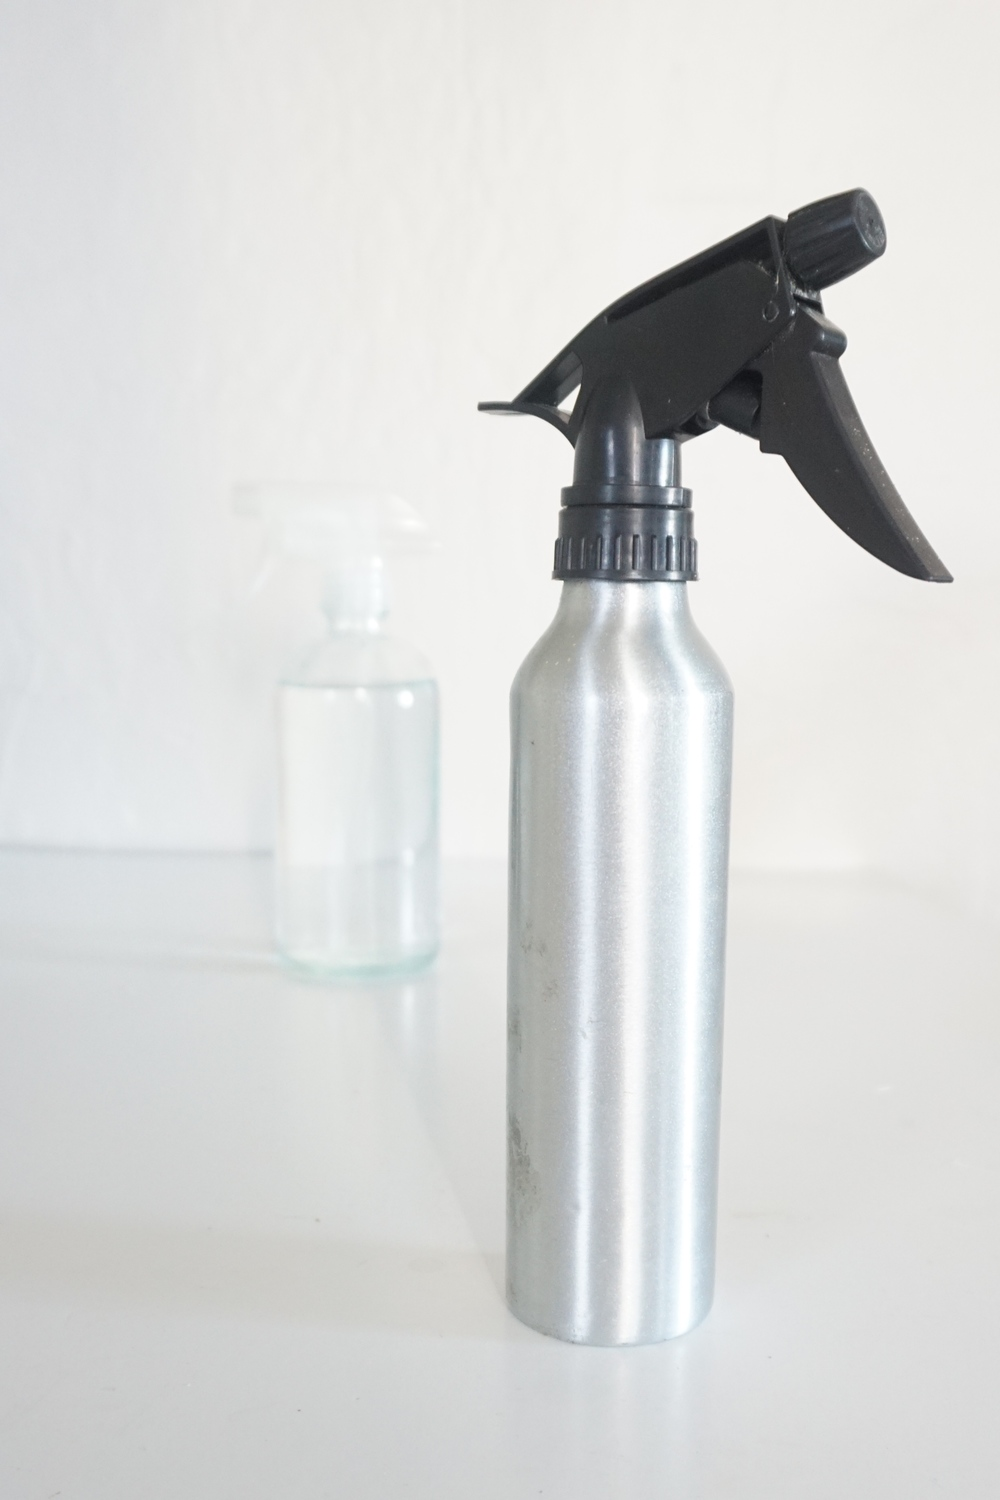 Clean your home with two all natural, zero waste, all-purpose cleaners from www.goingzerowaste.com